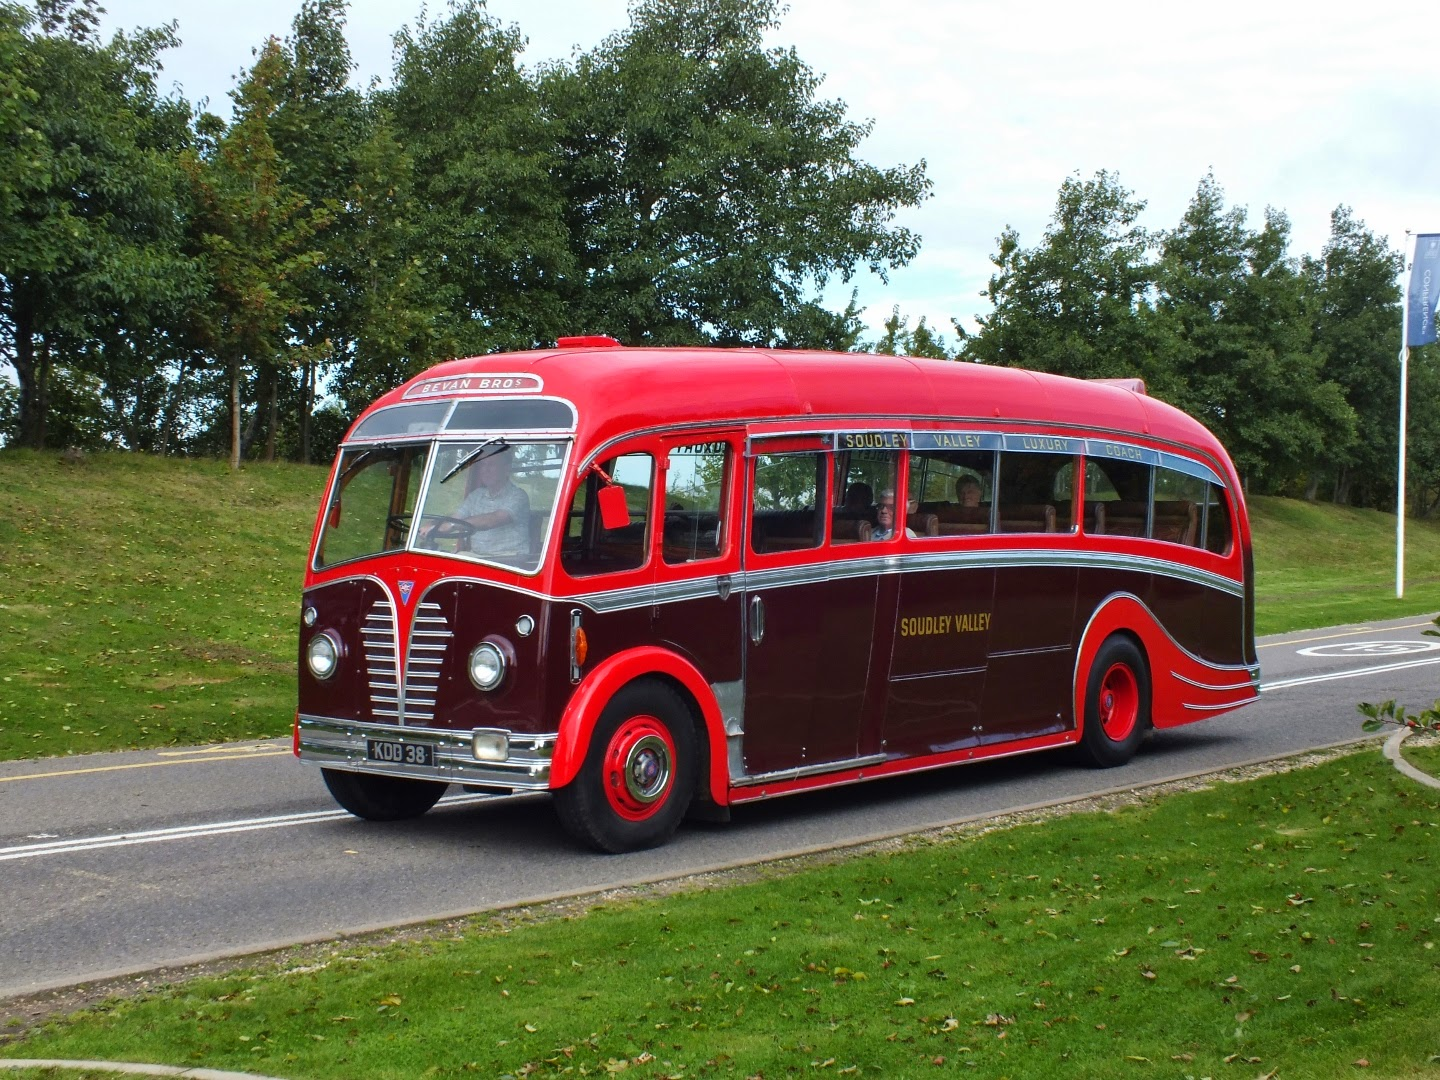 hight resolution of i hadn t seen this gloucestershire classic for a while the memory of forest of dean based soudley valley is revived by kdd 38 a 1950 aec regal iii 9621a